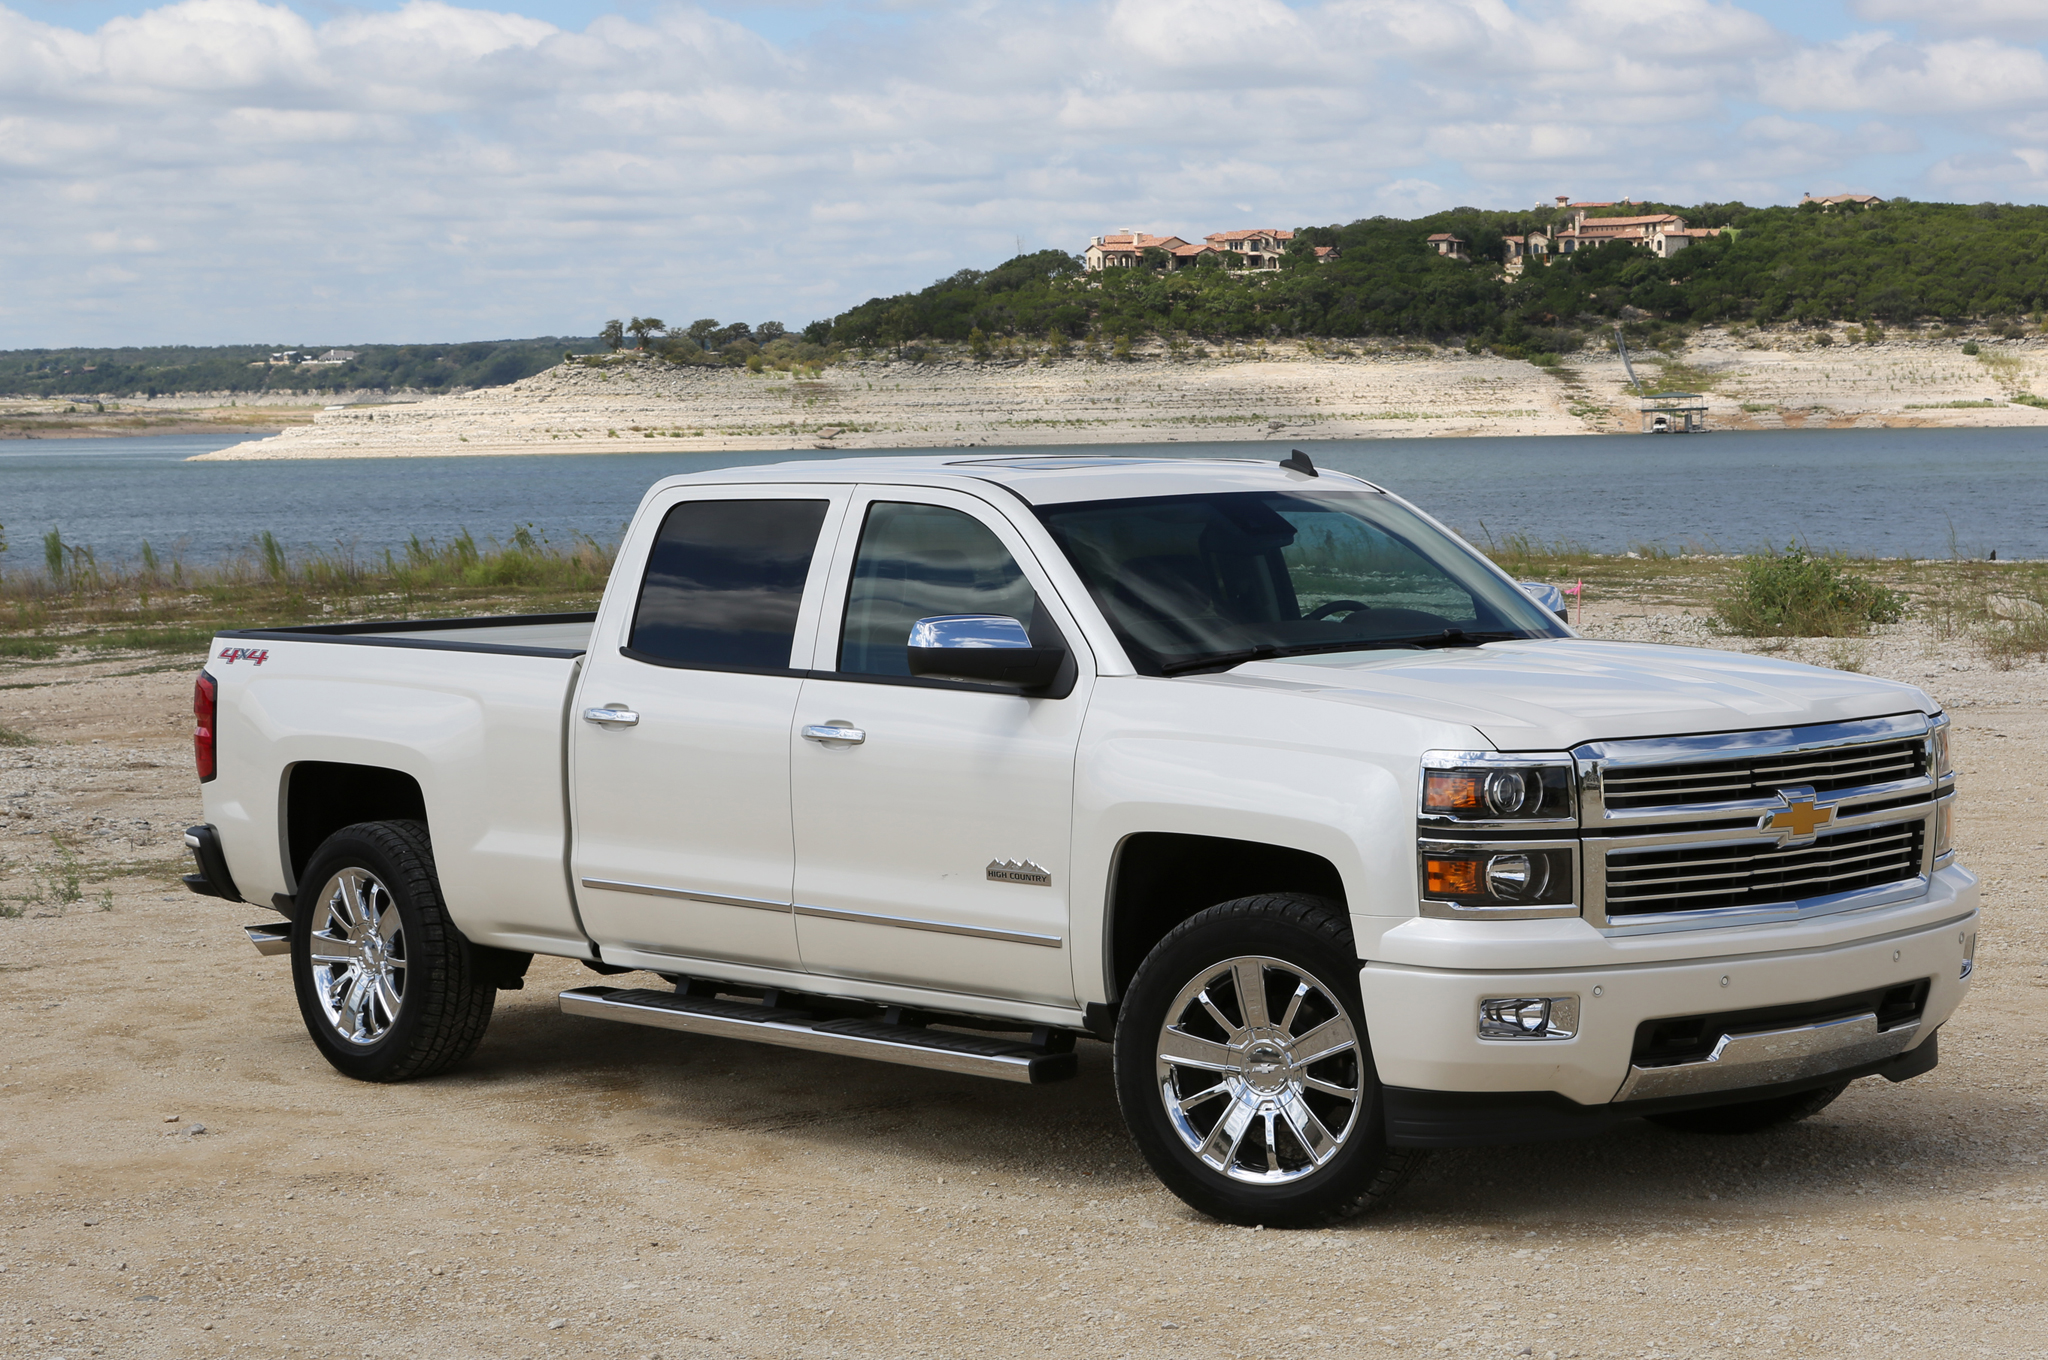 2014 chevy silverado awd entry price $ 25575 price as tested $ 52475